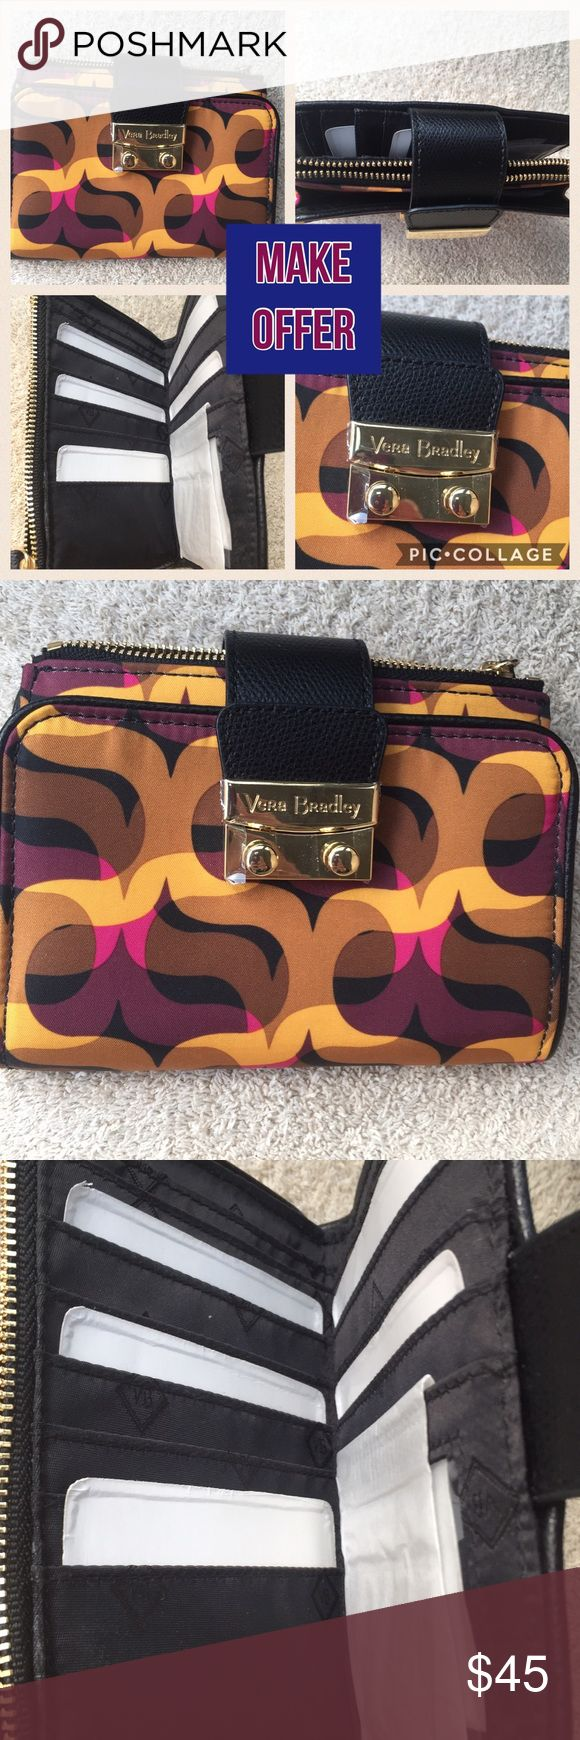 """✅JUST IN✅NEW ✅VERA BRADLEY BI- FOLD WALLET✅ ✅JUST IN✅BEAUTIFUL NEW UNIQUE RARE VERA BRADLEY FLORAL DESIGN BI- FOLD WALLET✅ SIZE ABOUT 6"""" x 6""""💖MAKE OFFER🌺BUNDLE AND SAVE🌺MAKE A BUNDLE OFFER YOU MAY GET FABULOUS PRICE🌺 Vera Bradley Bags Wallets"""